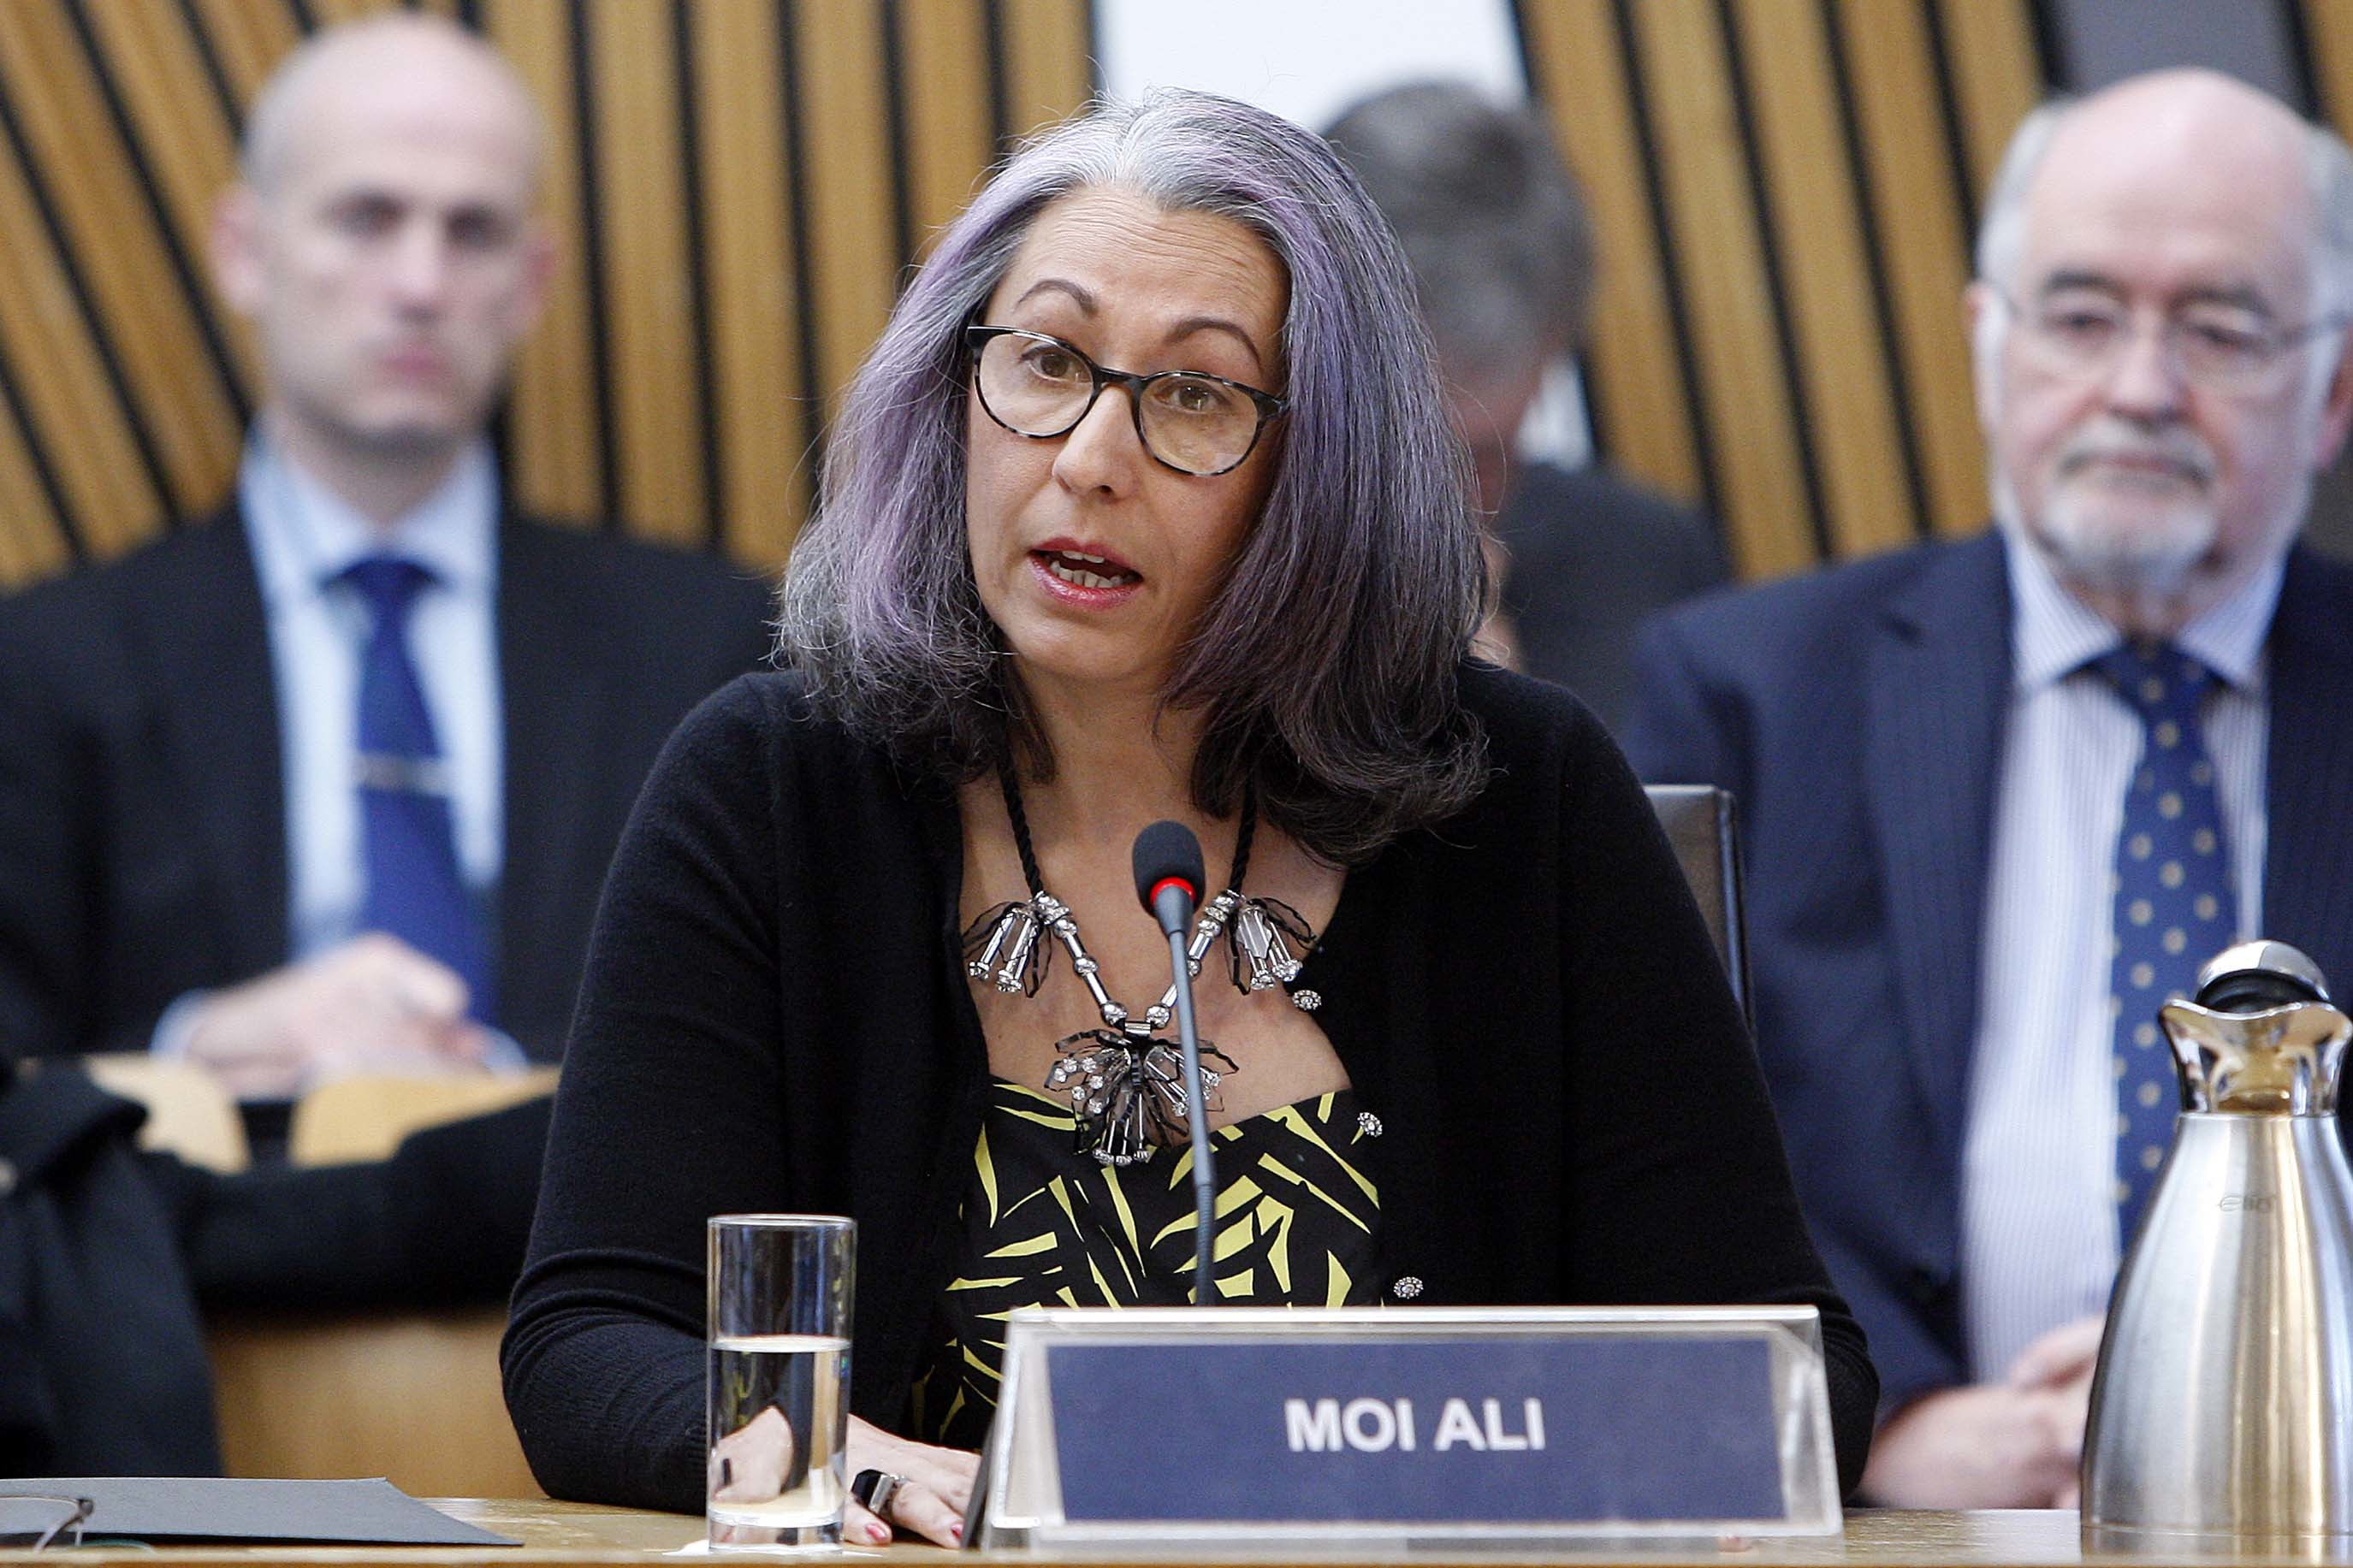 Moi Ali, former SPA board member (Andrew Cowan/Scottish Parliament)